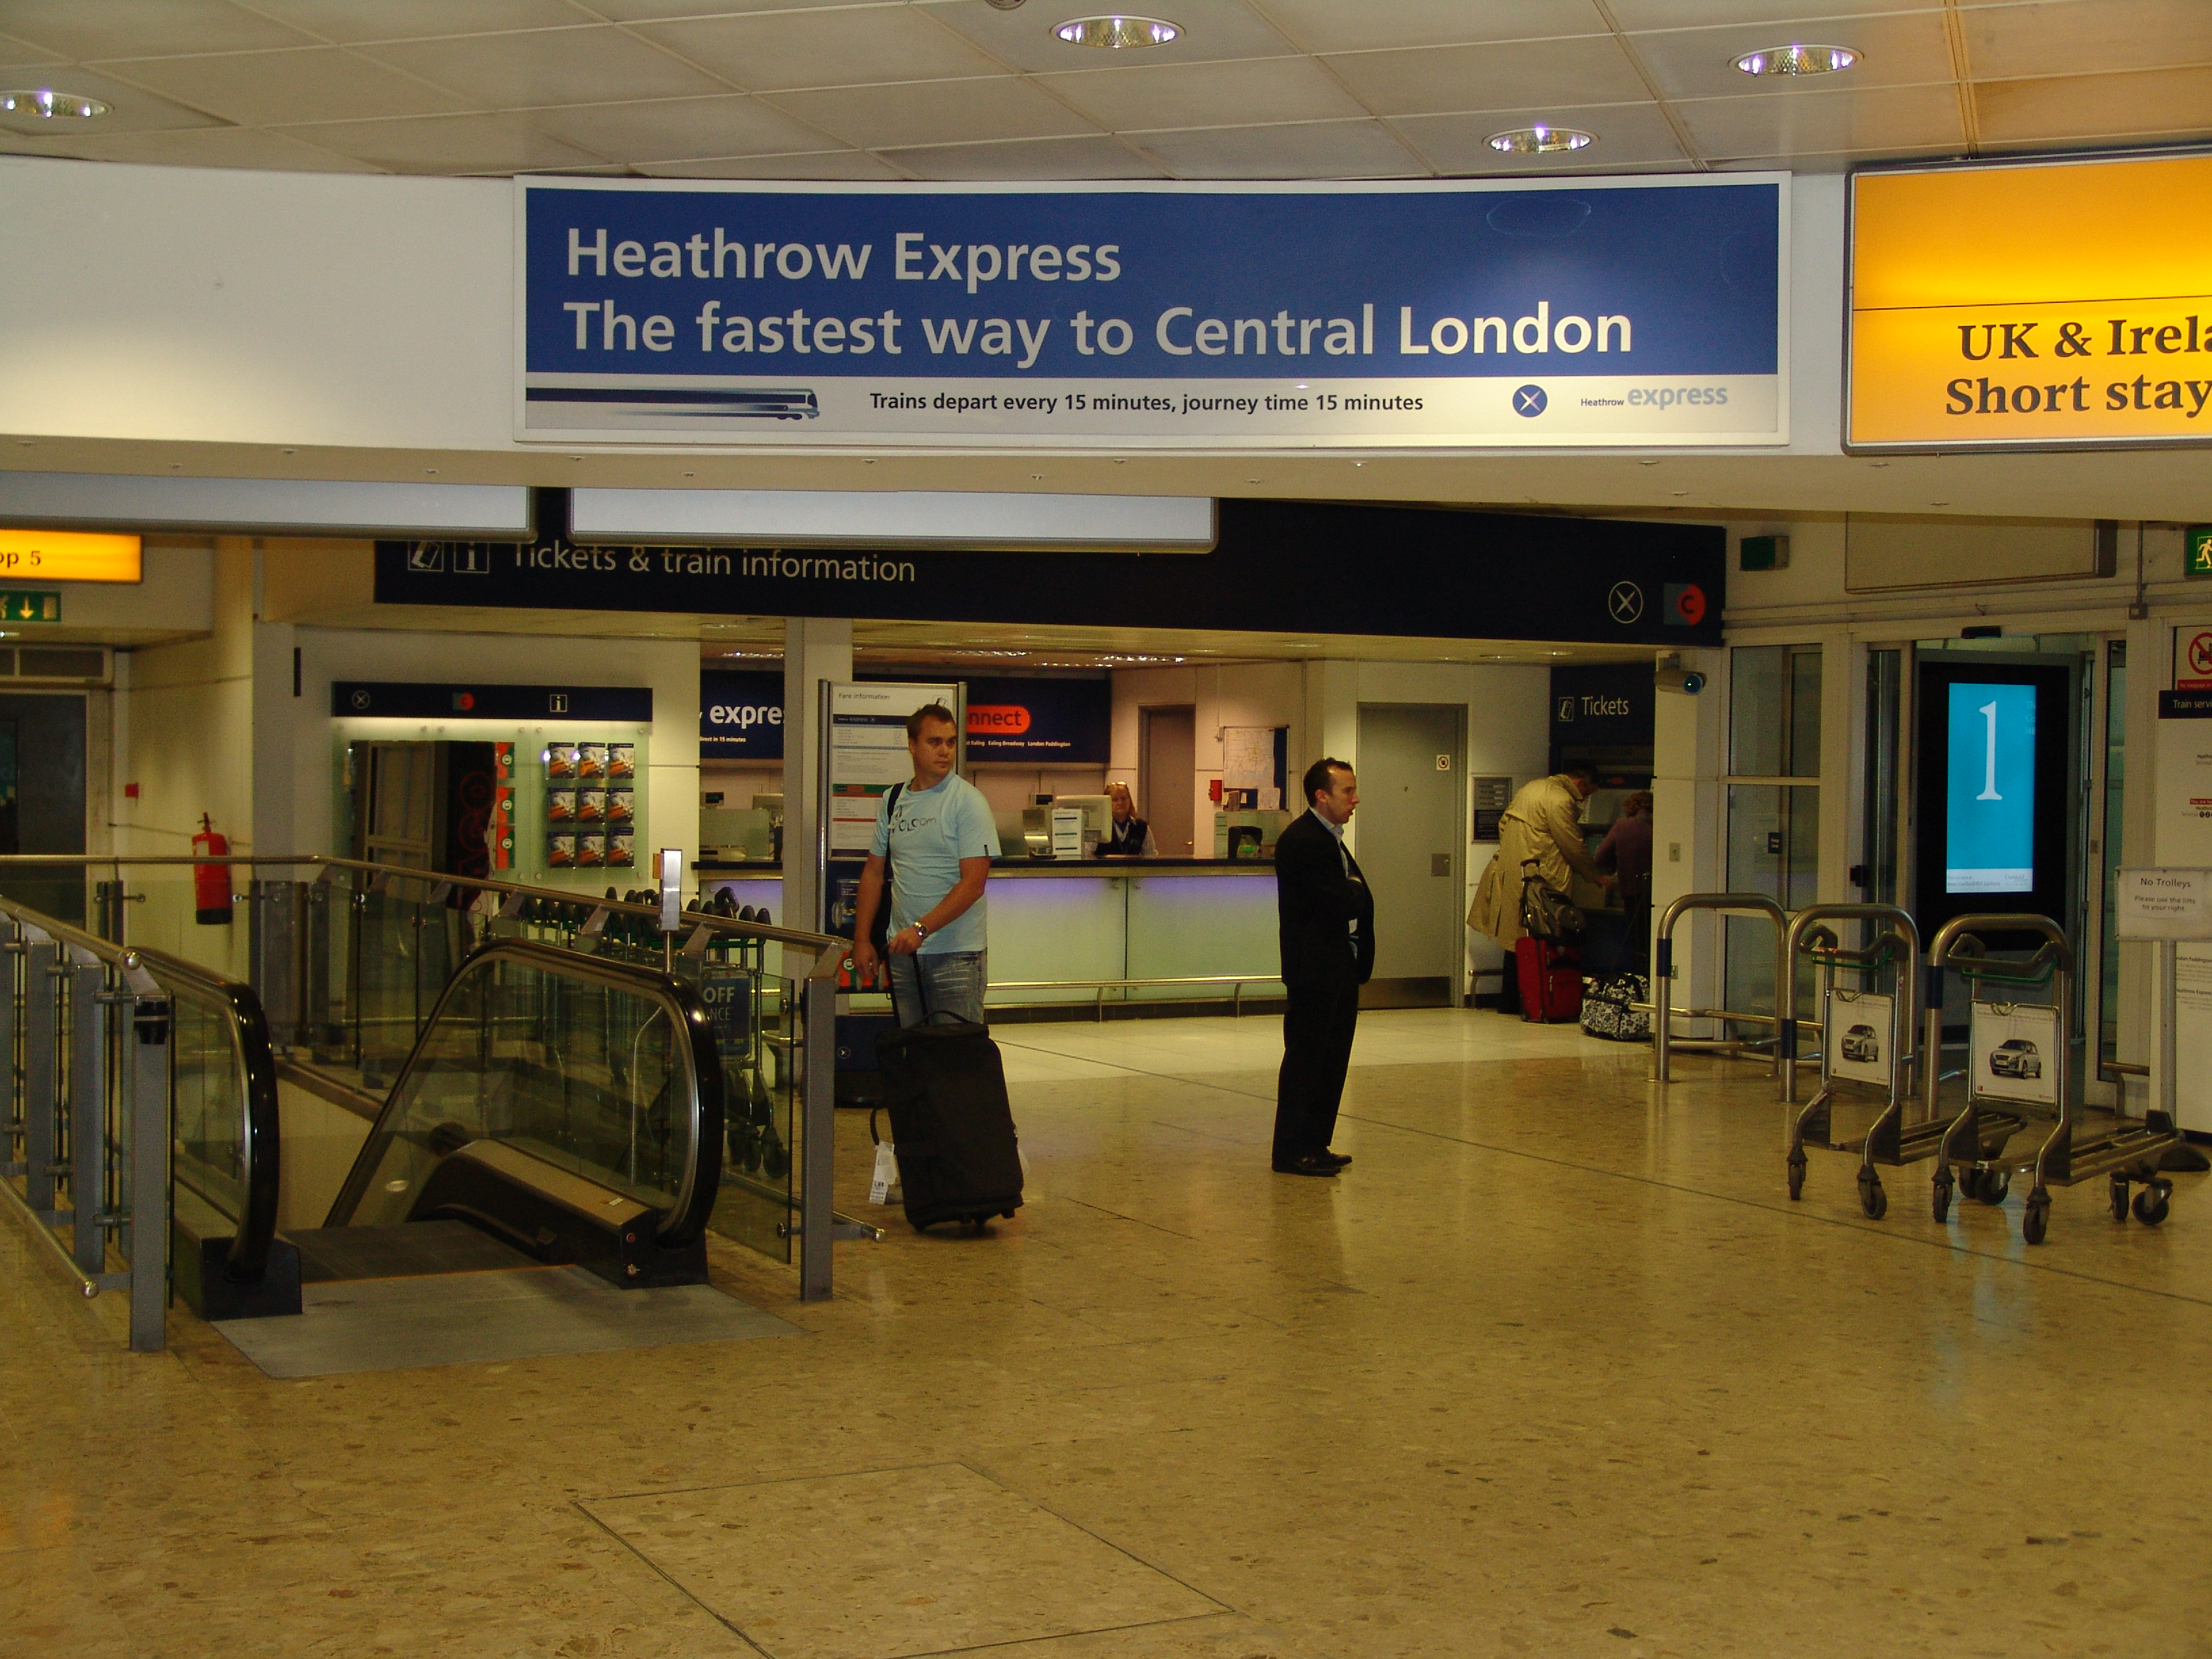 Enterprise Car Rental Return Heathrow Airport